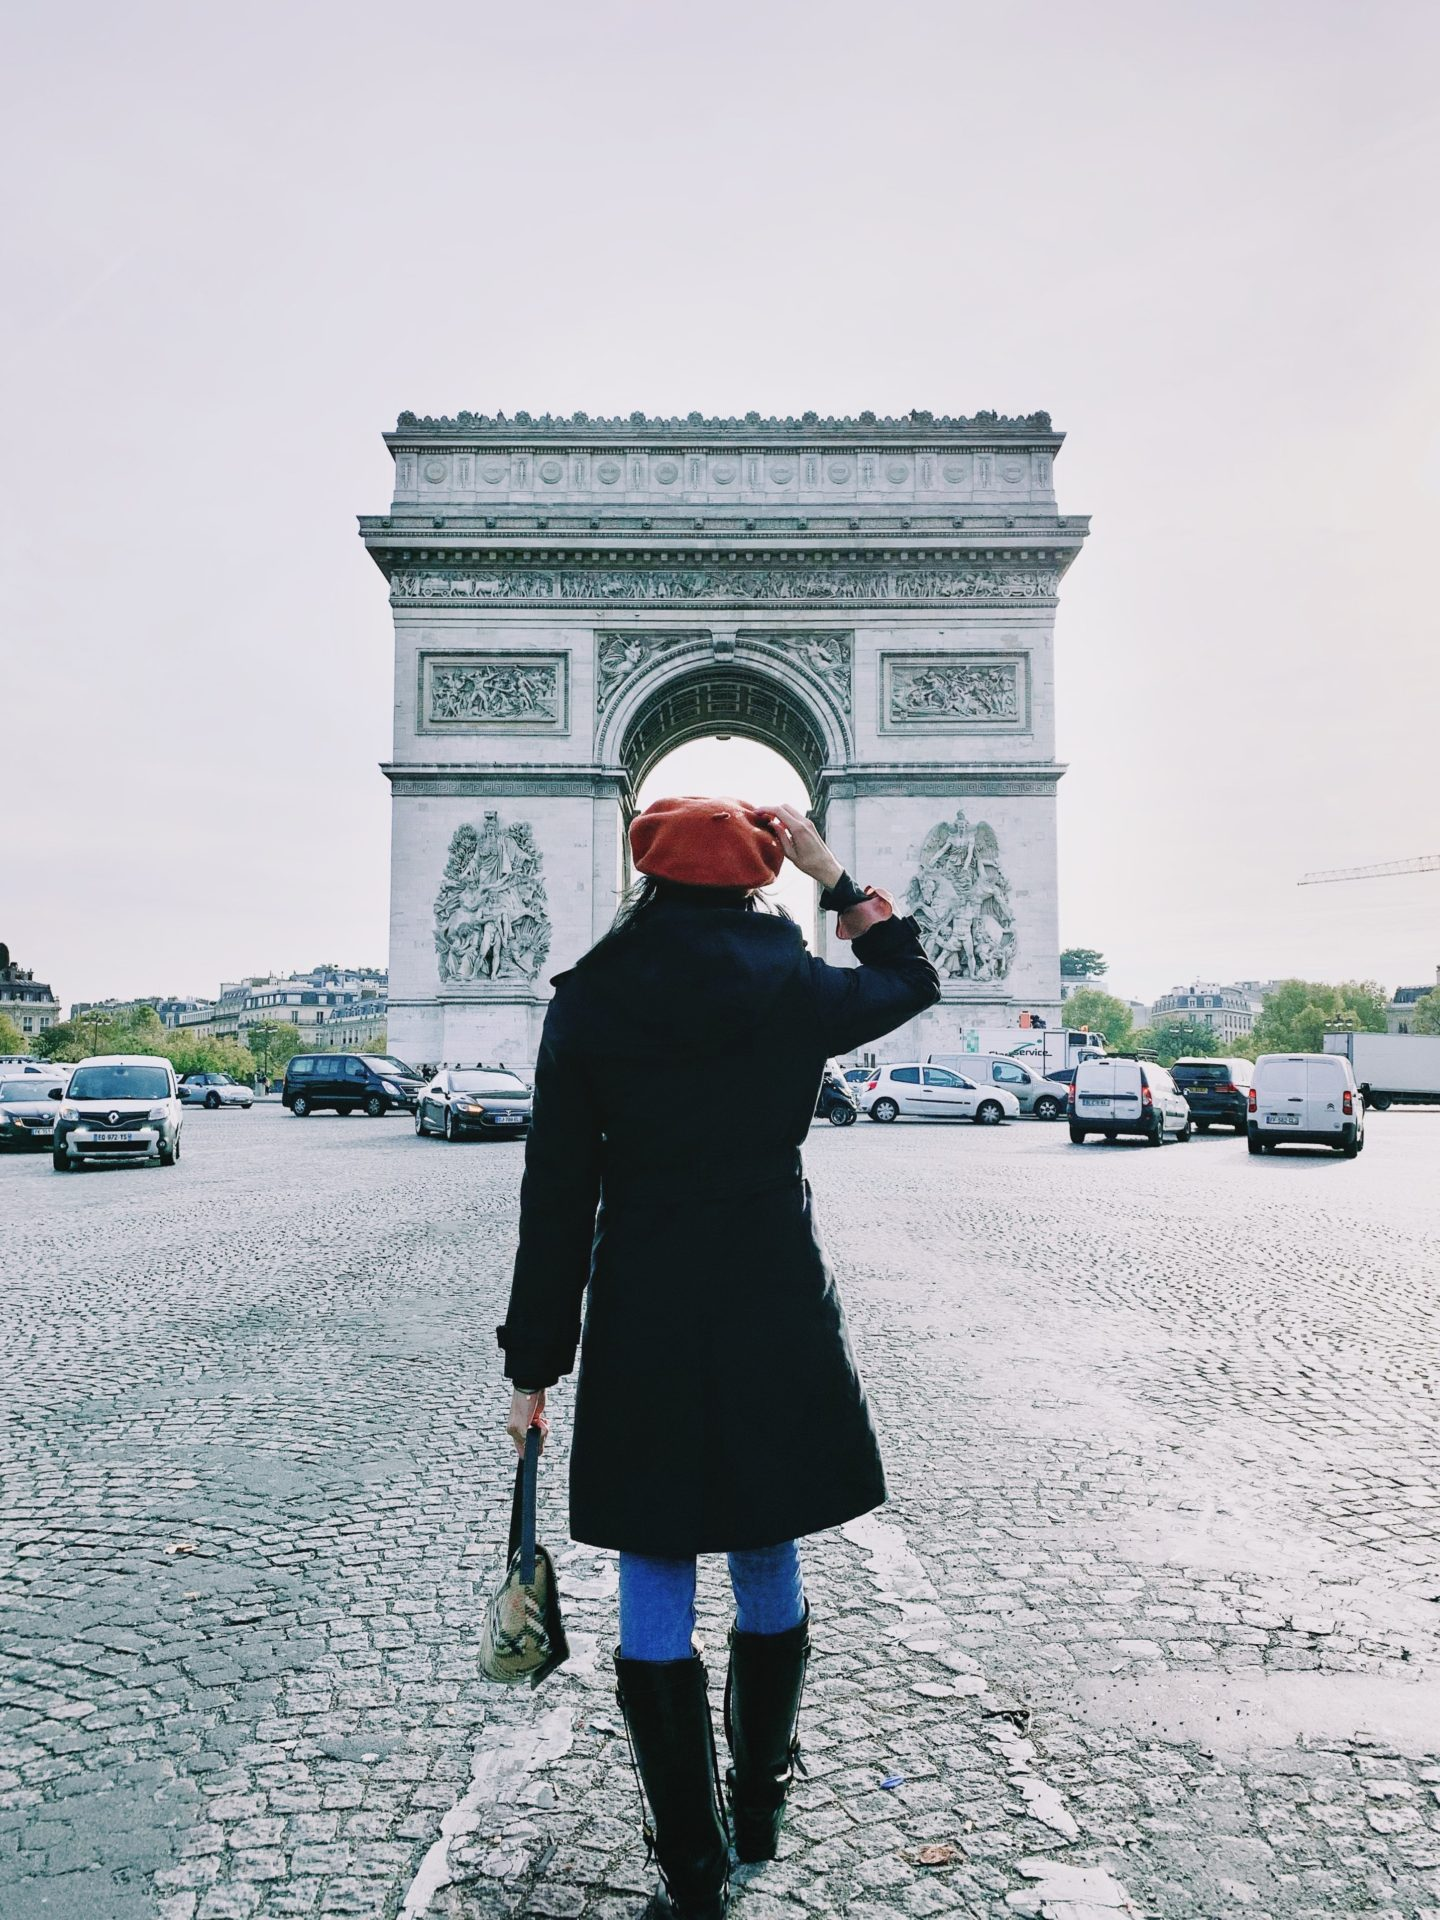 The Triumphal Arch, the most instagrammable places in Paris